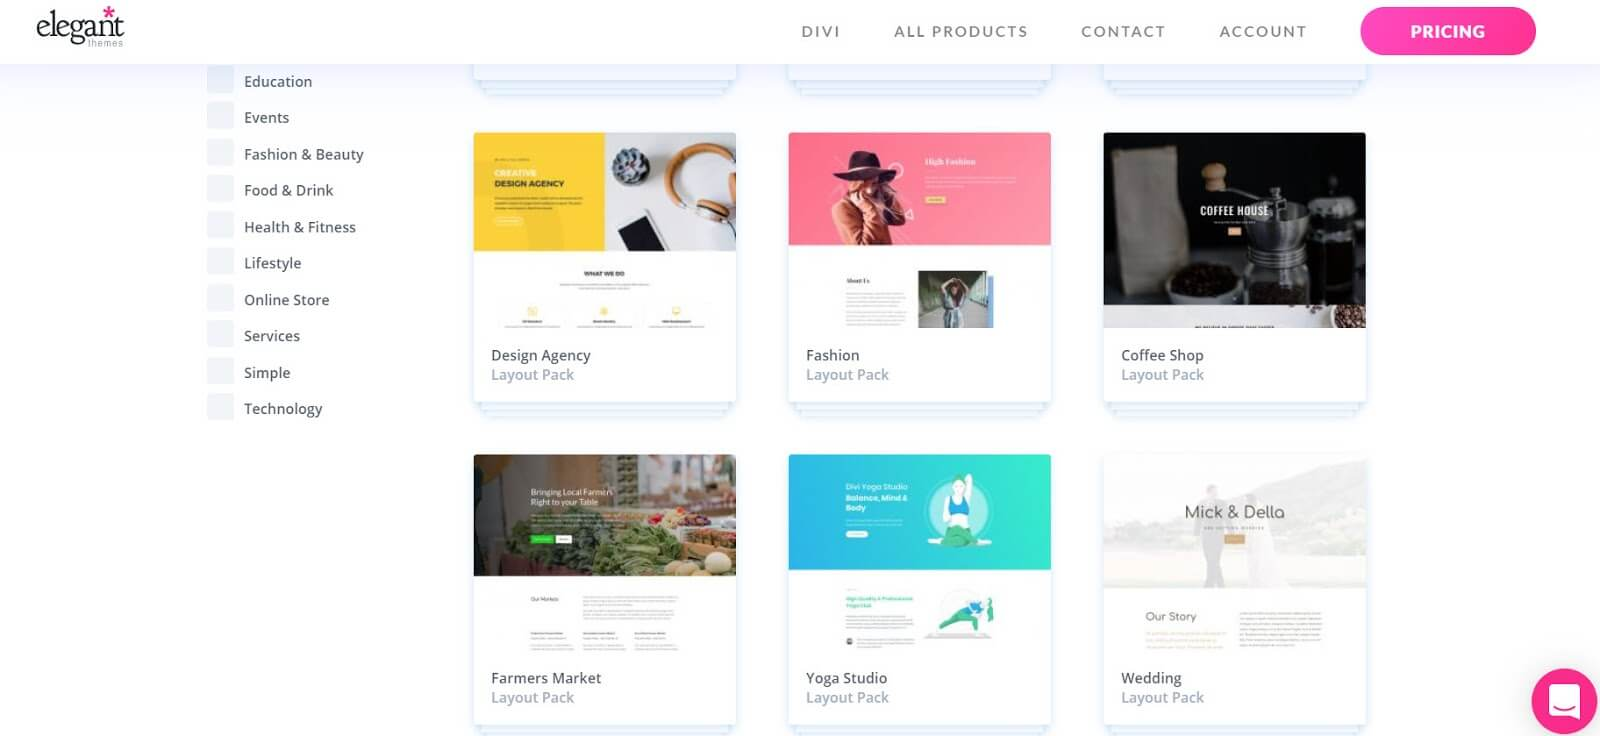 Elegant Themes Overview